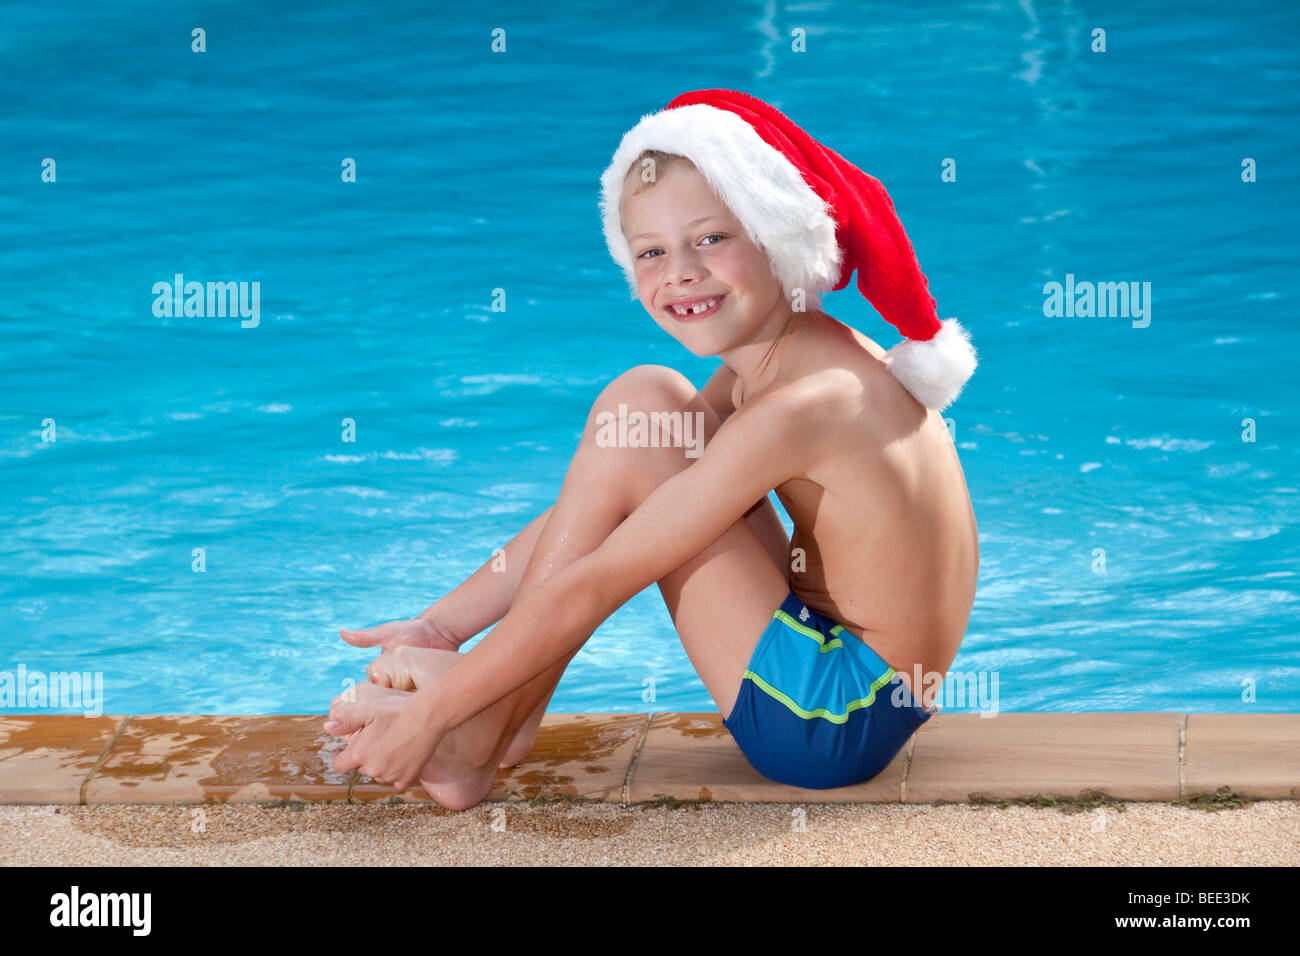 Boy wearing a Santa Clause hat sitting at a pool symbolic picture - Stock Image